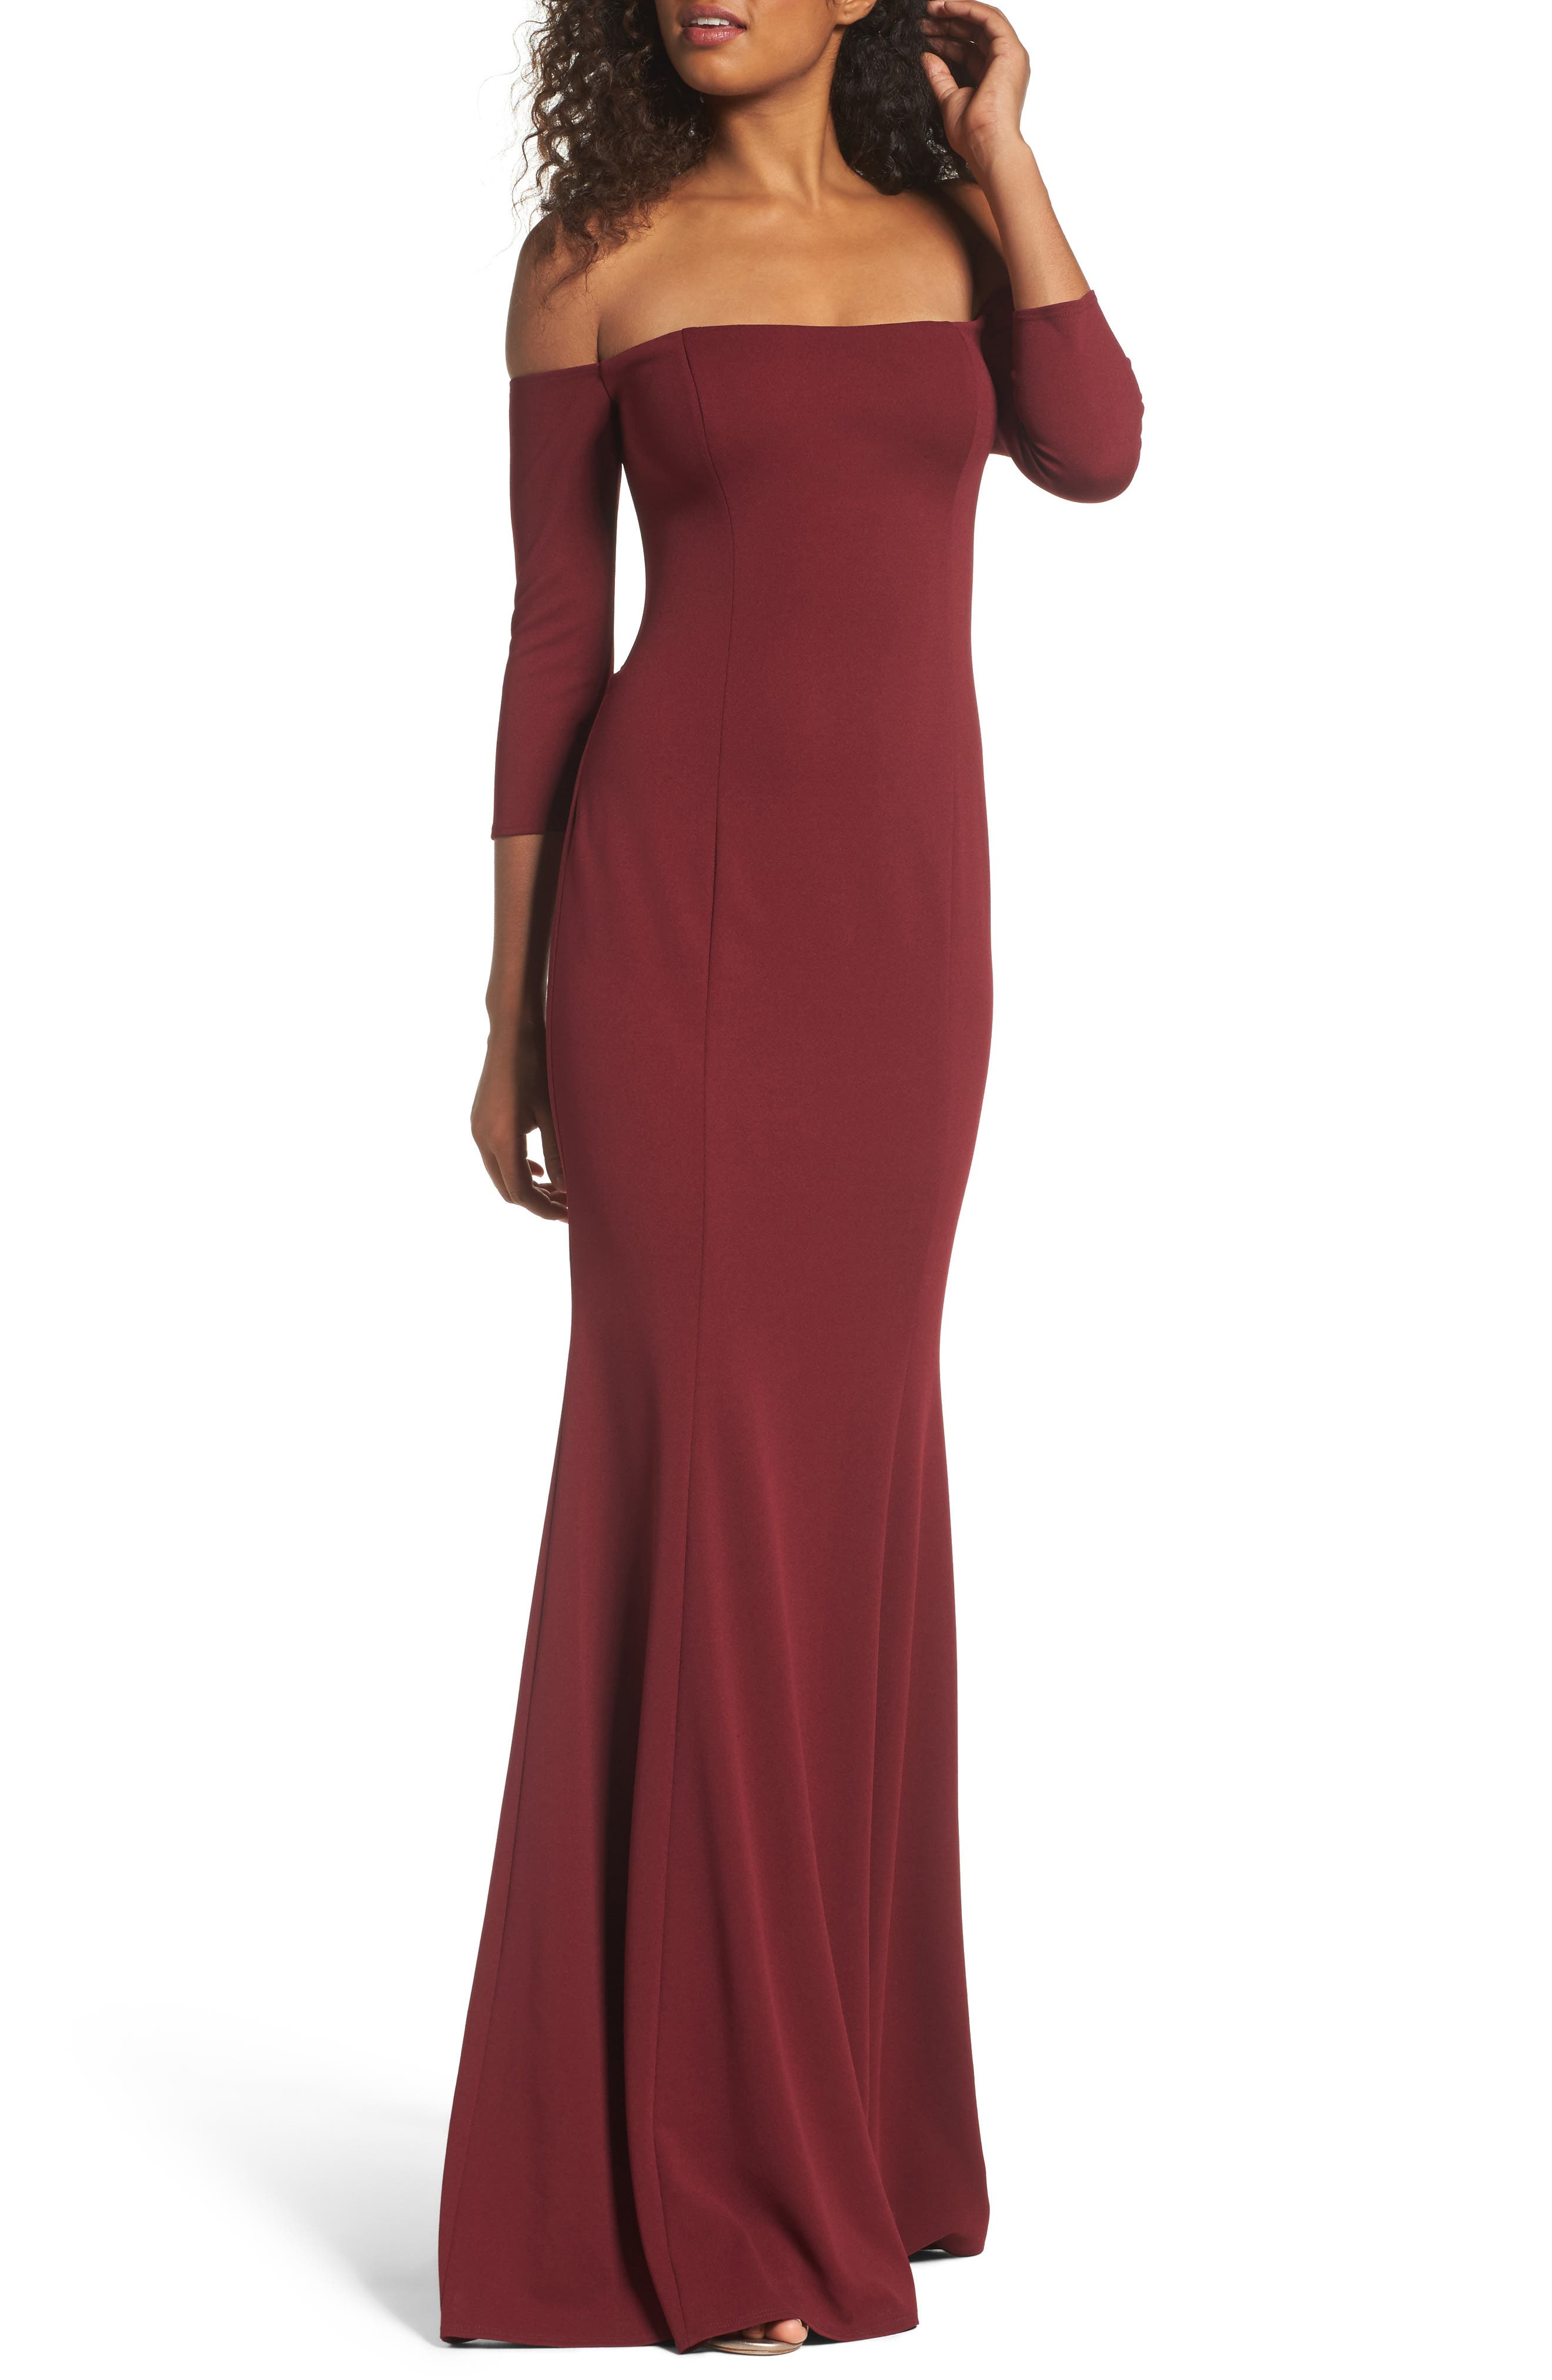 Brentwood Three-Quarter Sleeve Off the Shoulder Gown,                             Main thumbnail 1, color,                             Bordeaux